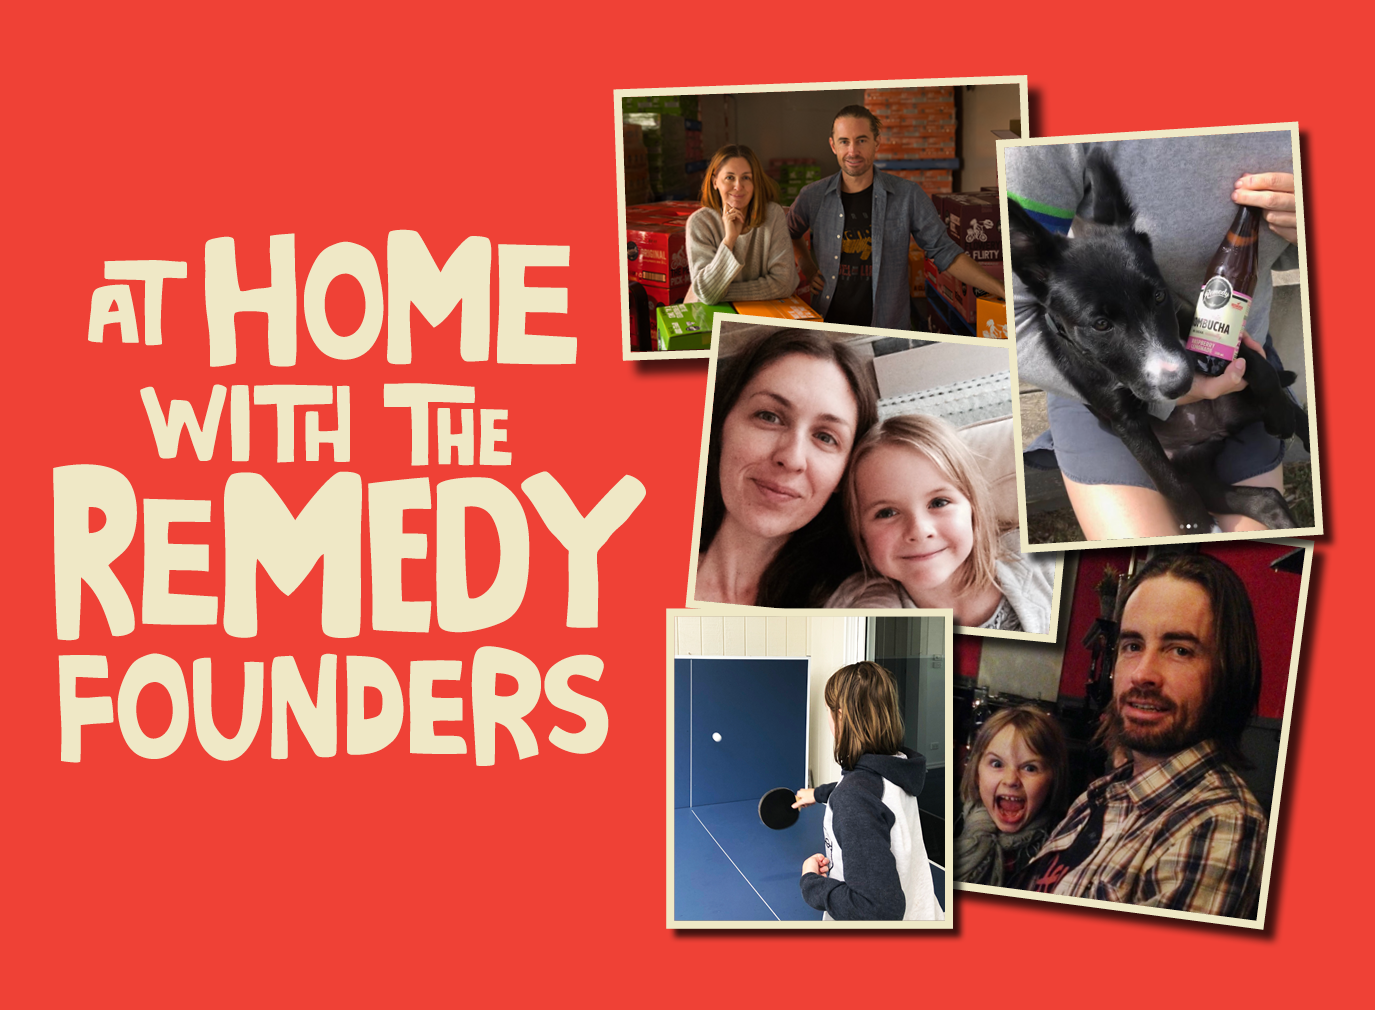 At home with Remedy founders